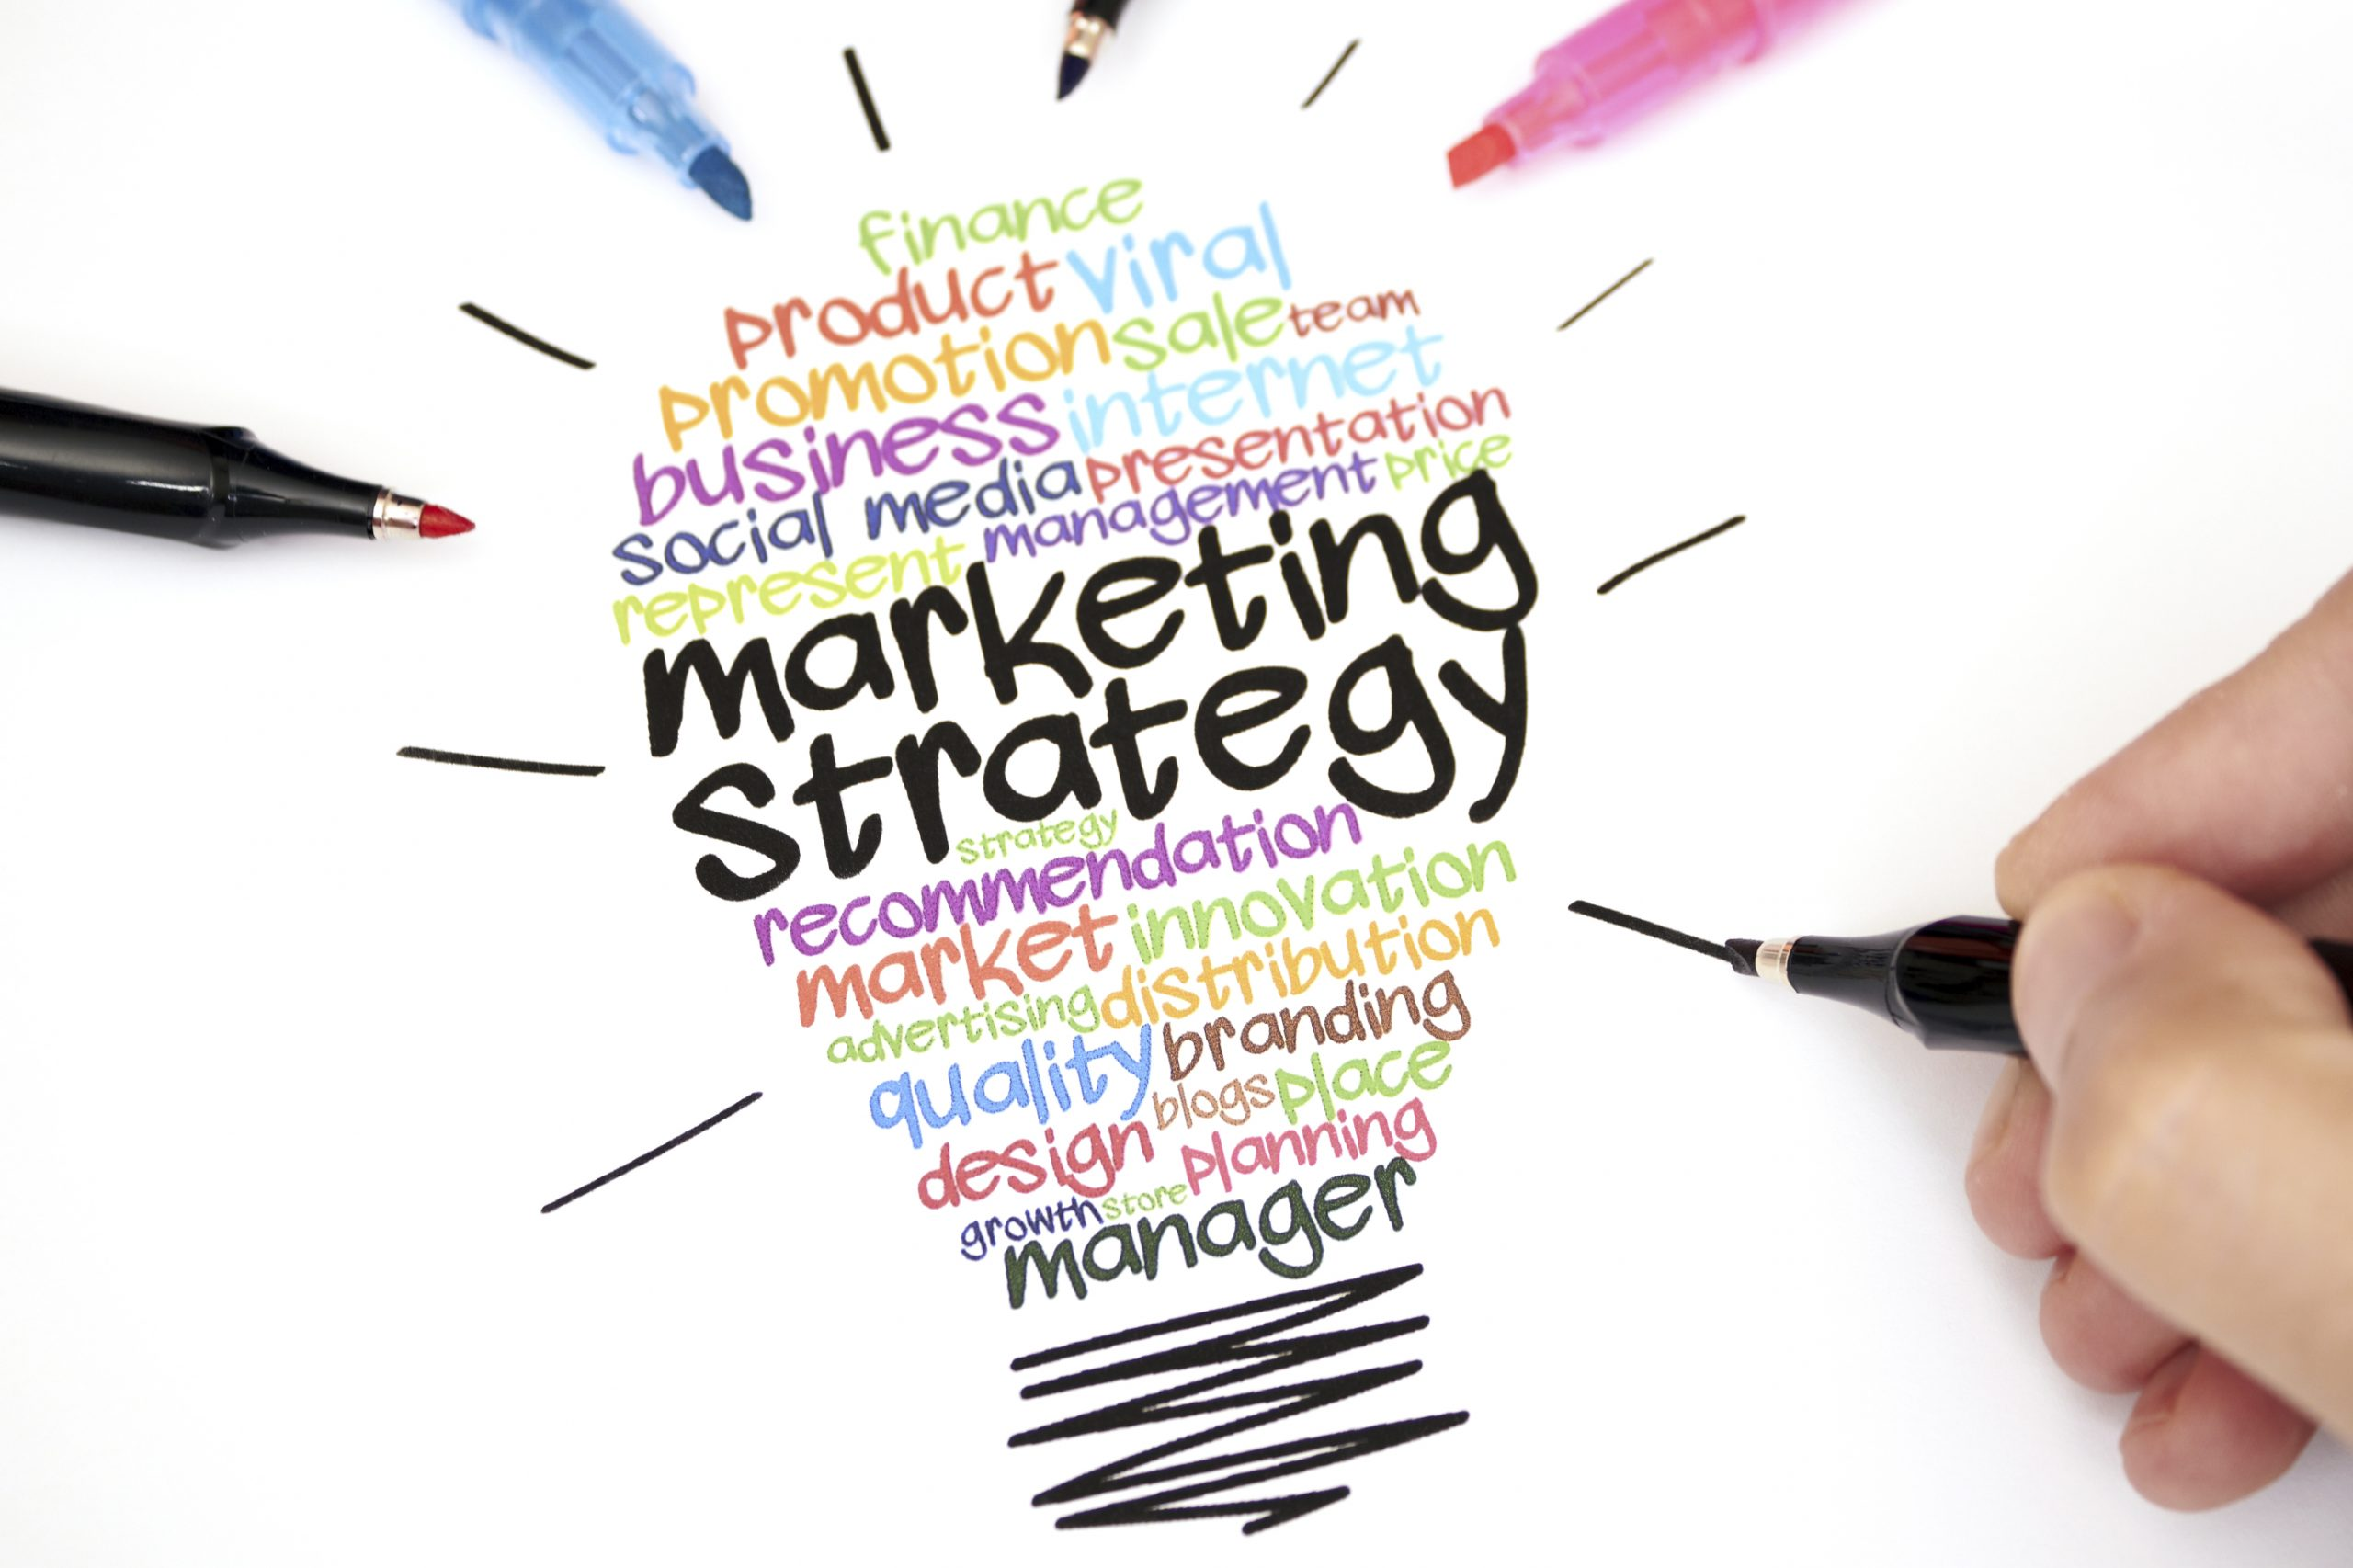 How to achieve your marketing goals?